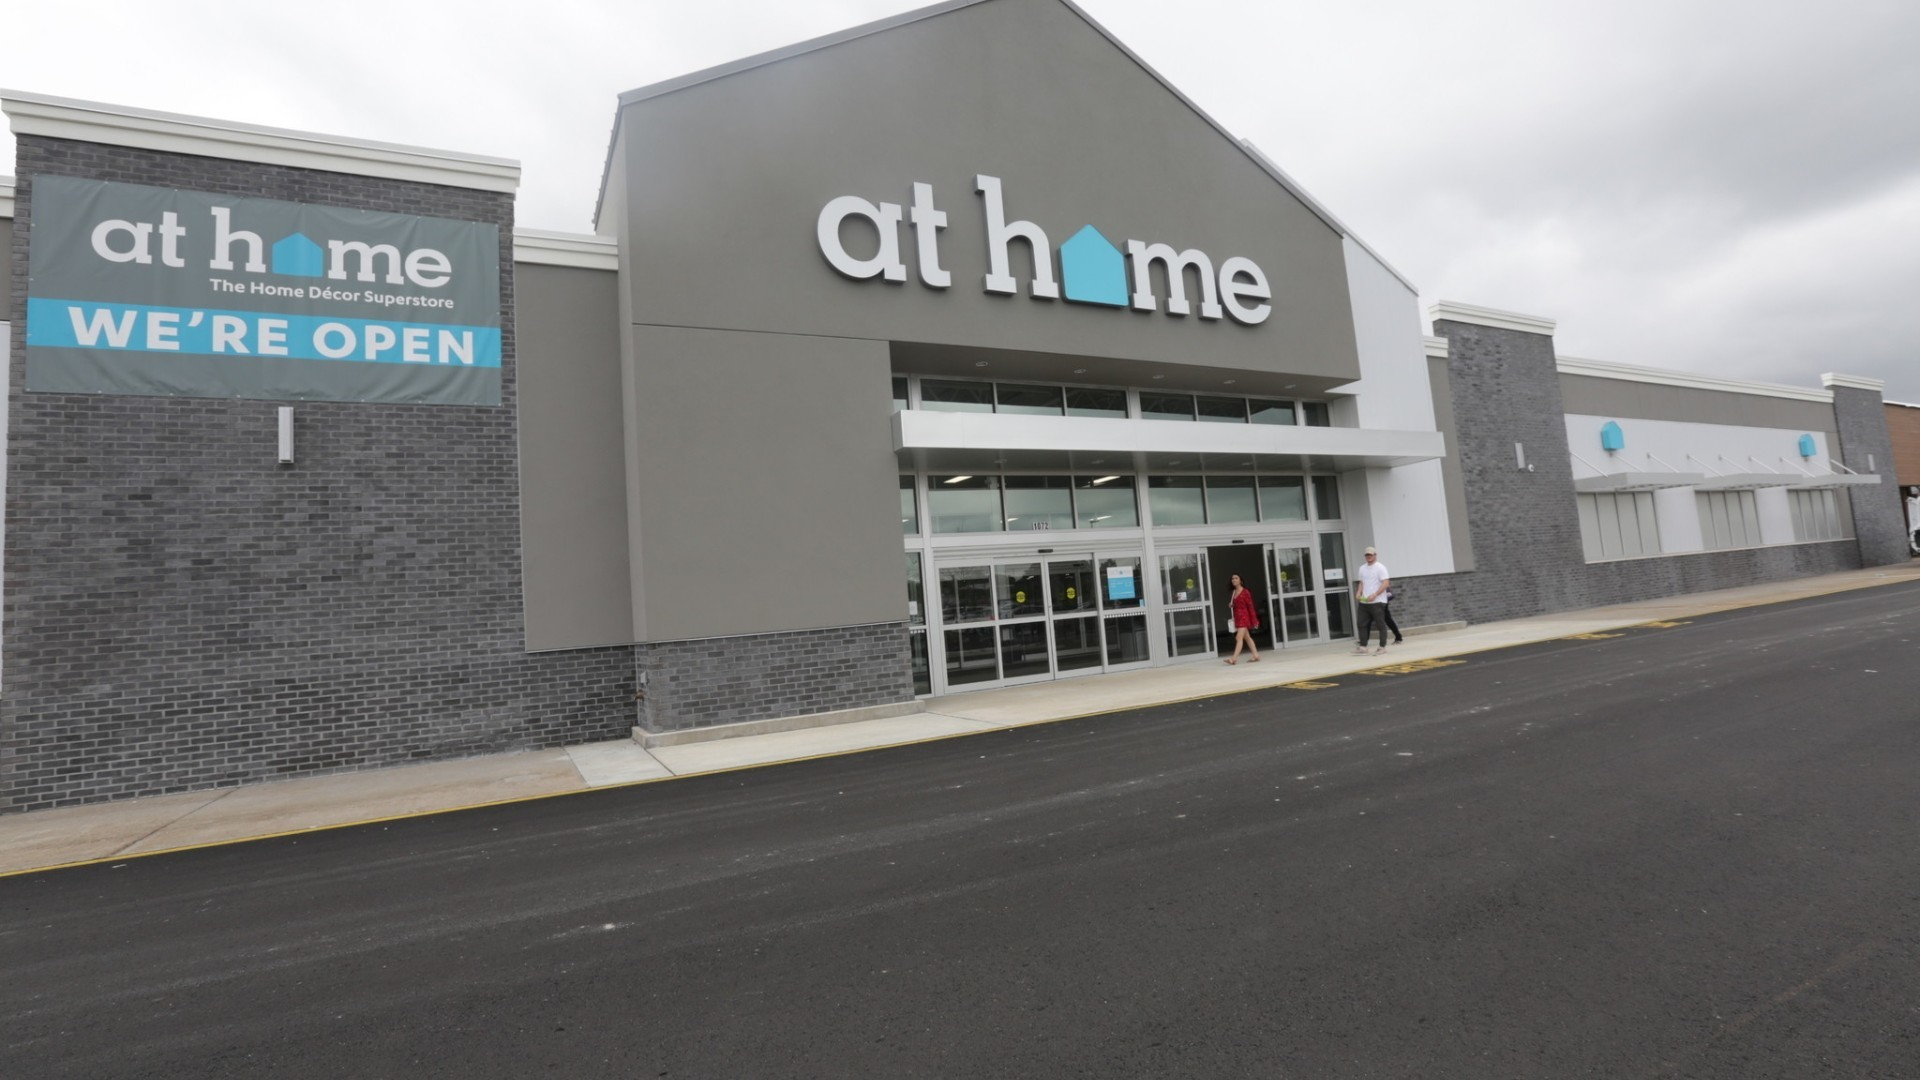 at home decorating superstore at home opens in hampton daily press 10395